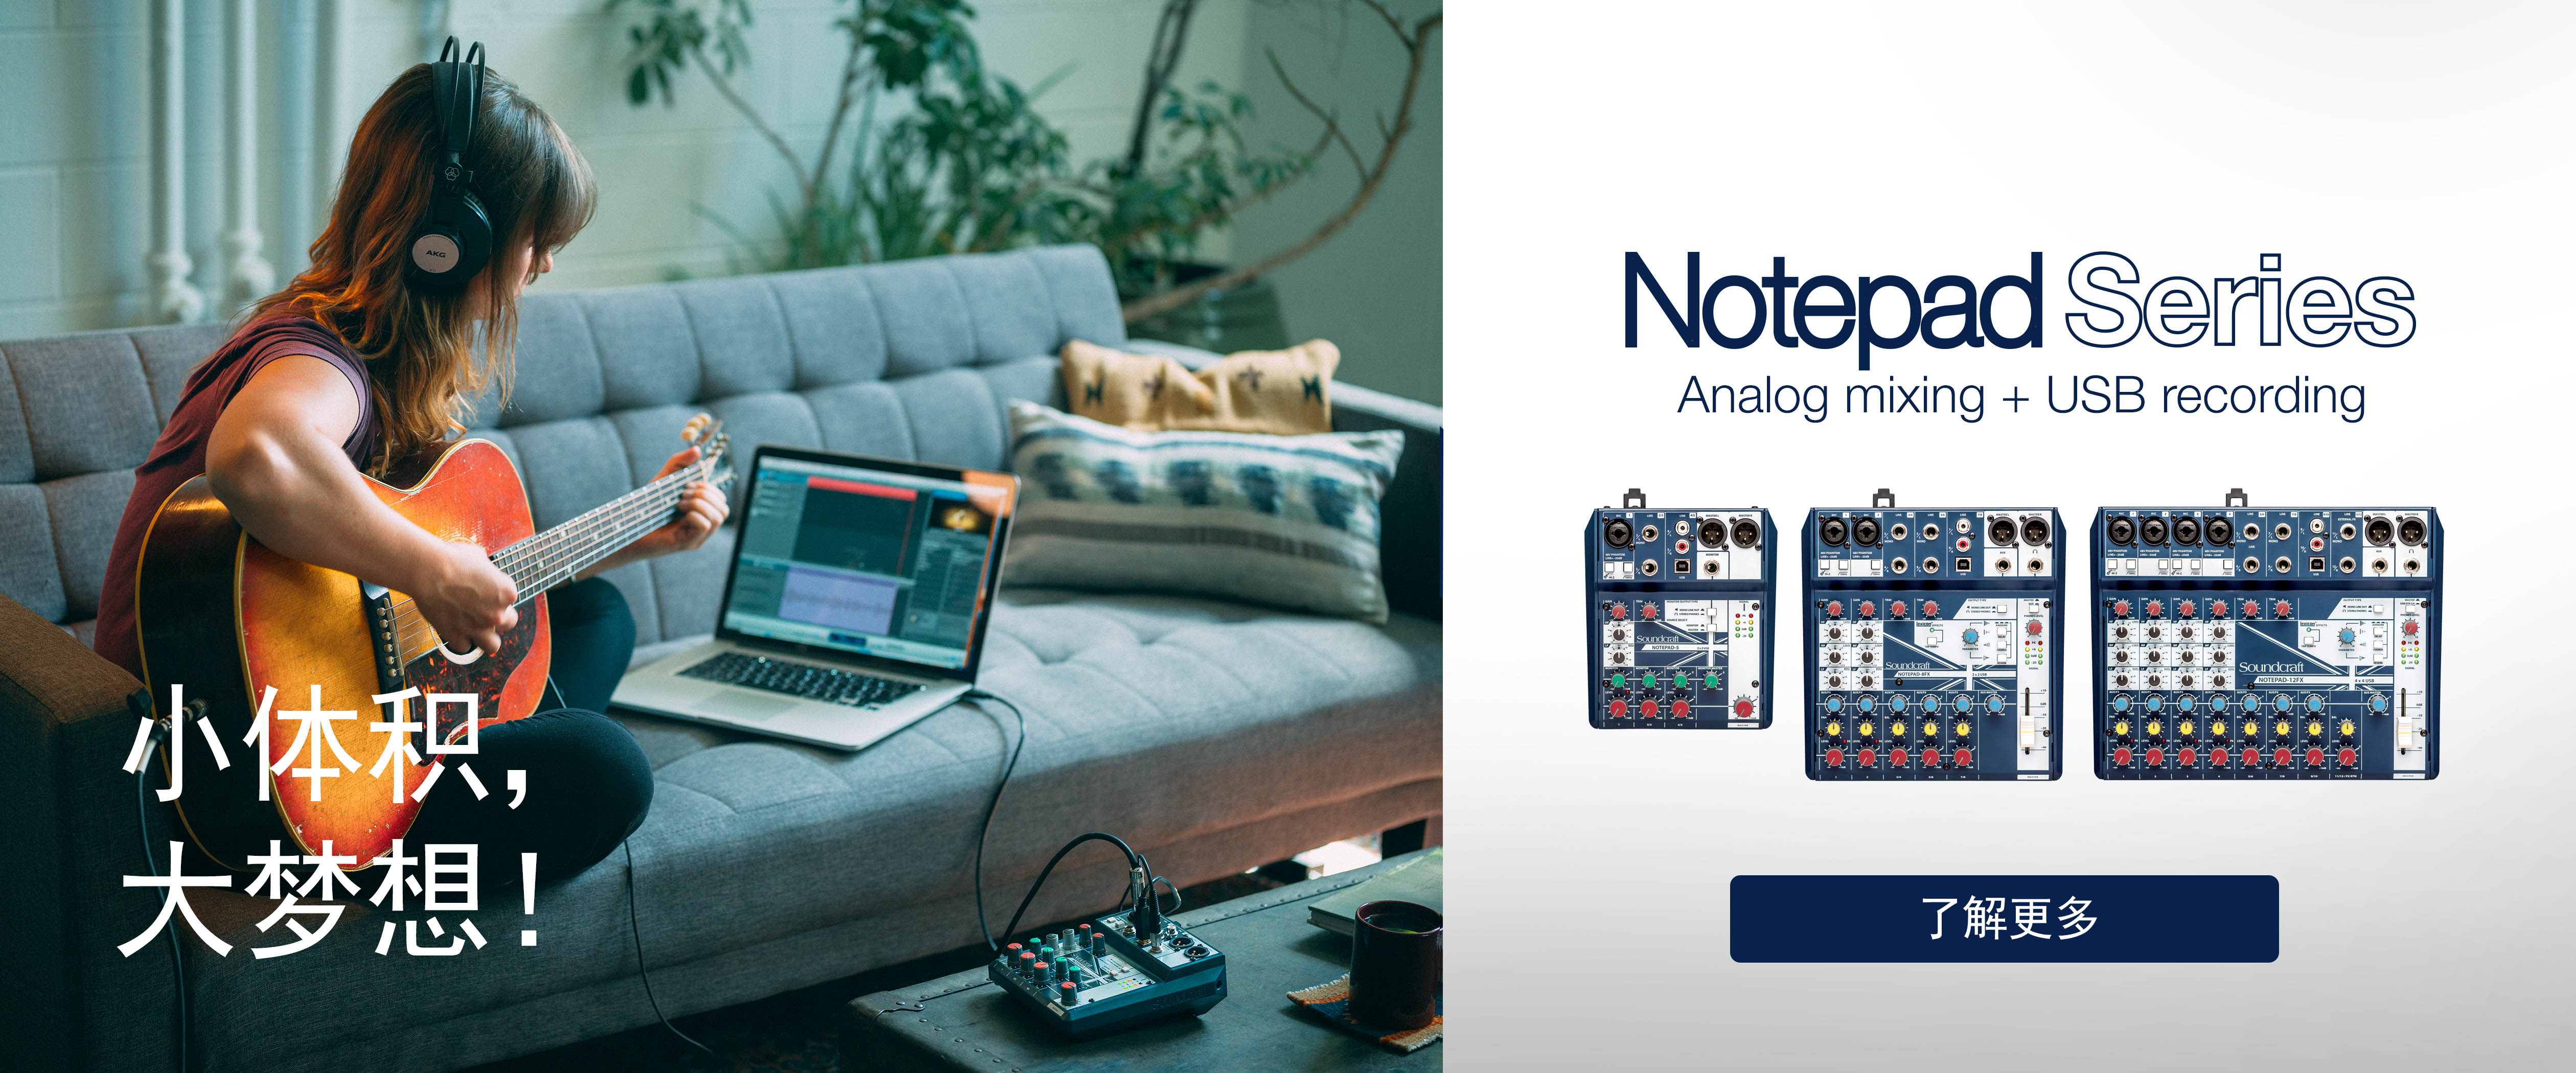 Notepad Series Now Shipping